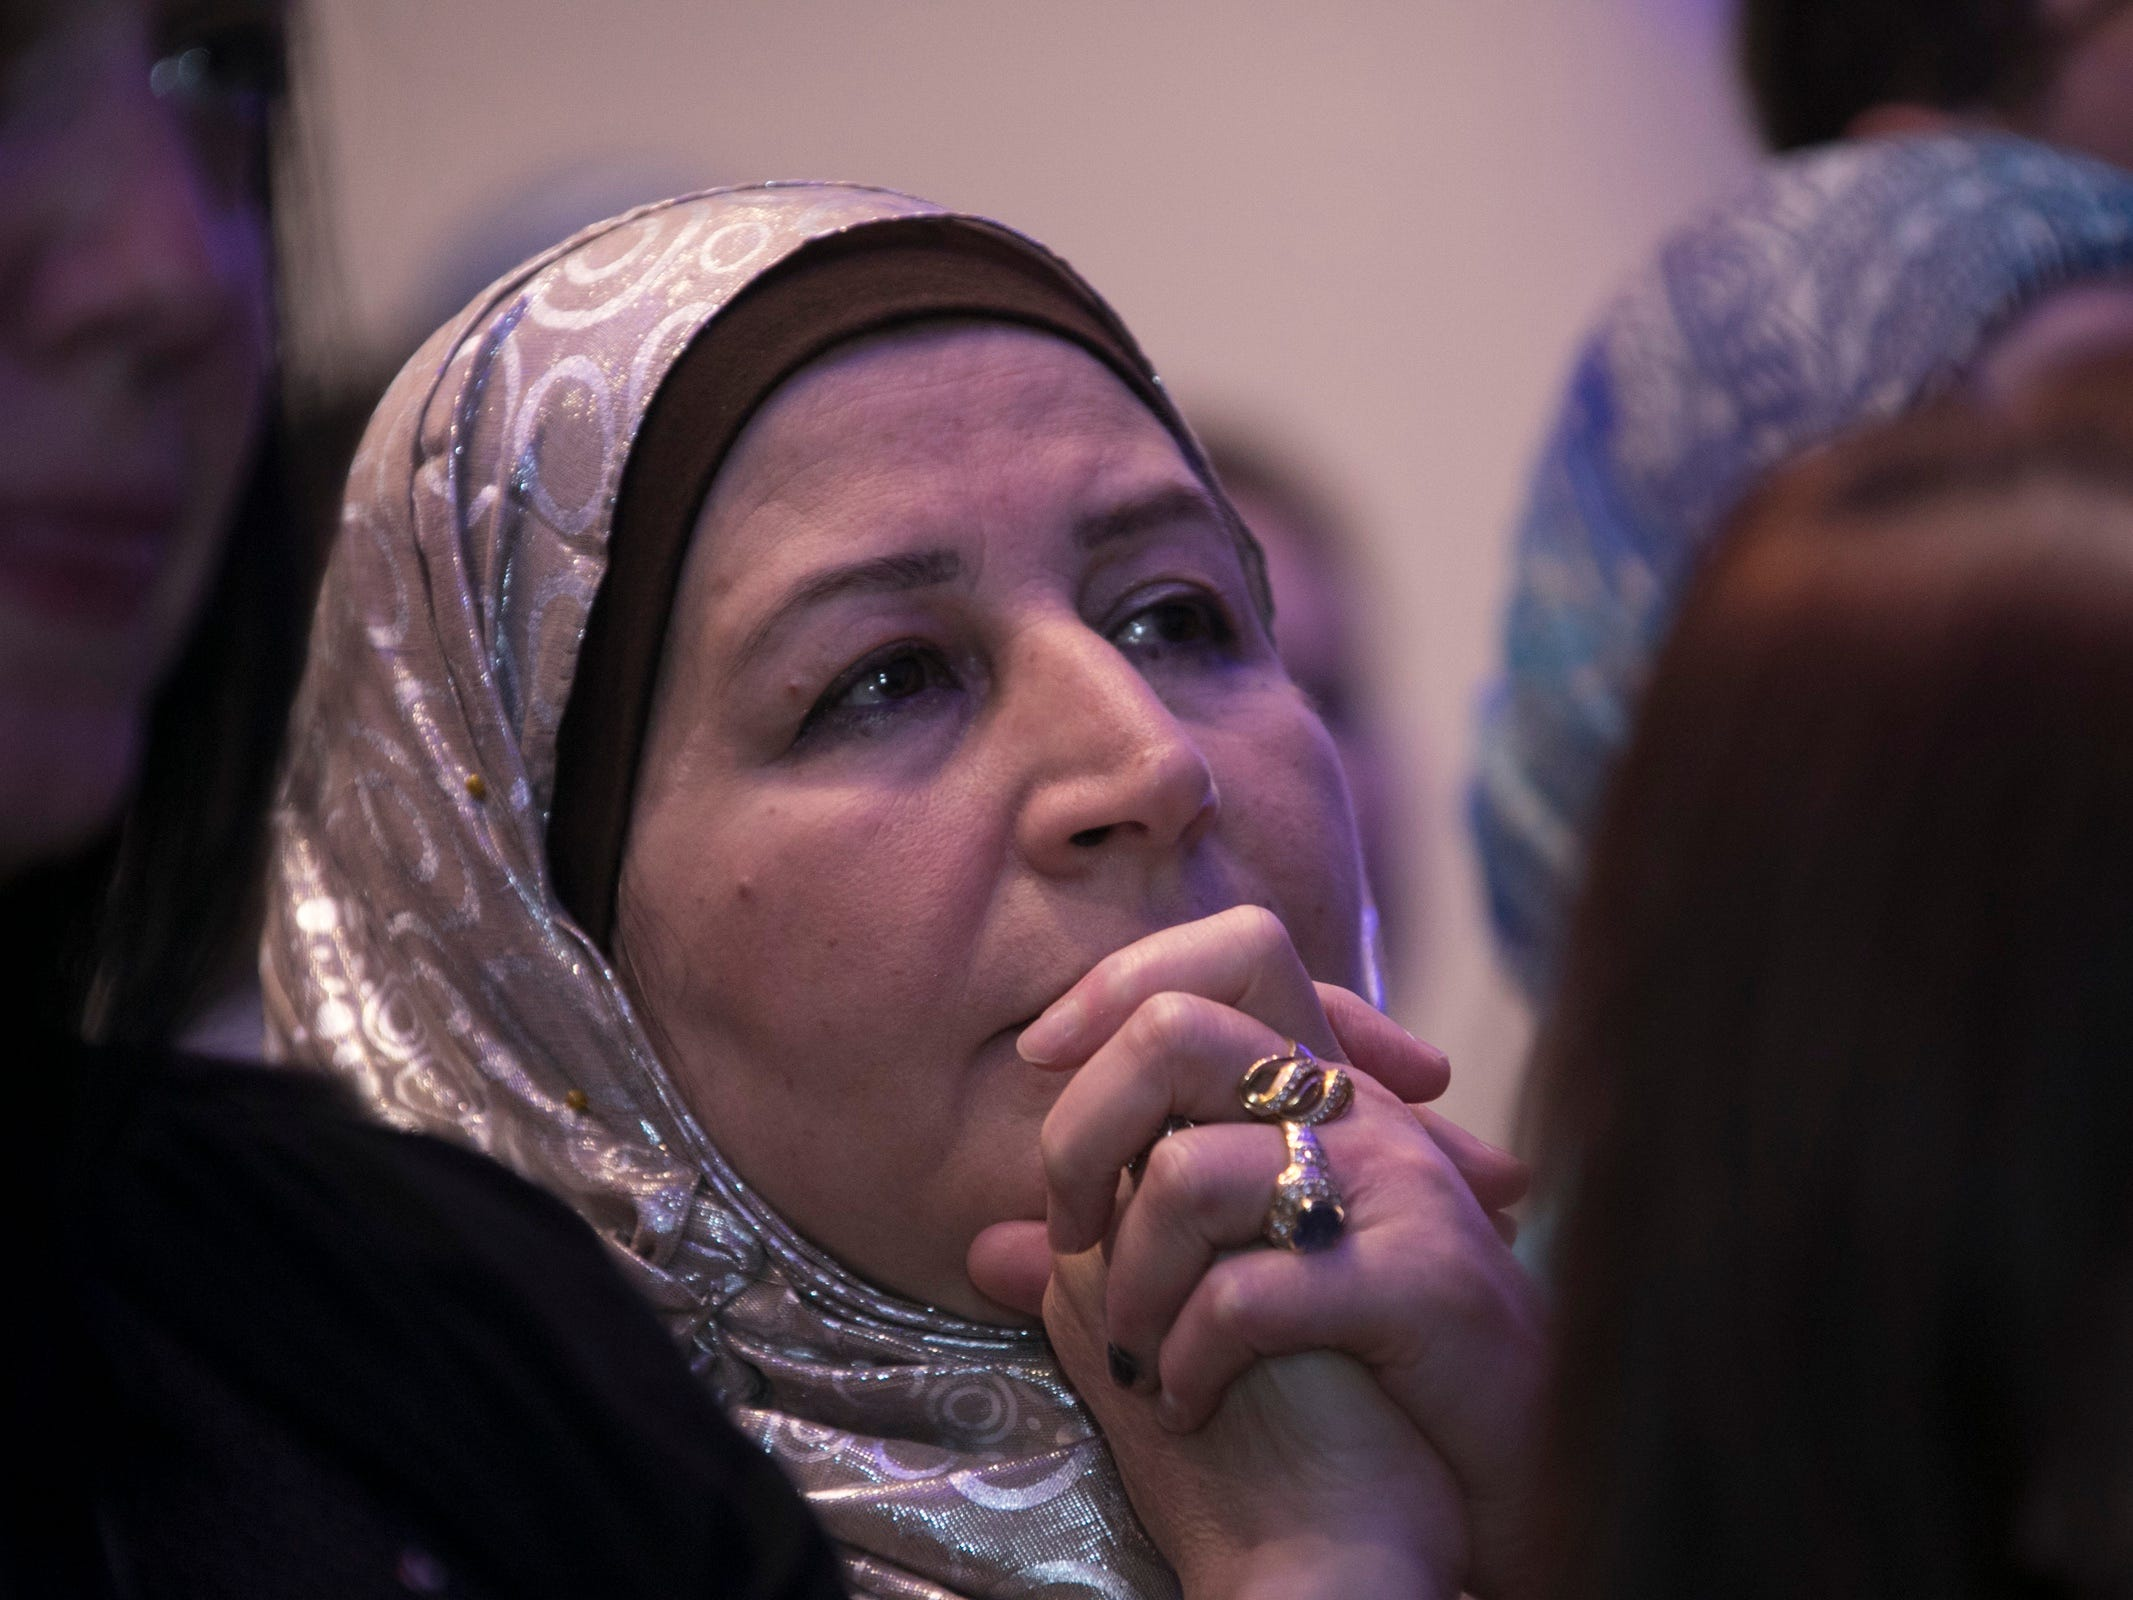 Ebtessam Abazed clasps her hands as Democratic gubernatorial candidate Abdul El-Sayed speaks to supporters at the Grand Riverview Ballroom at Cobo Center in Detroit Tuesday, August 7, 2018.